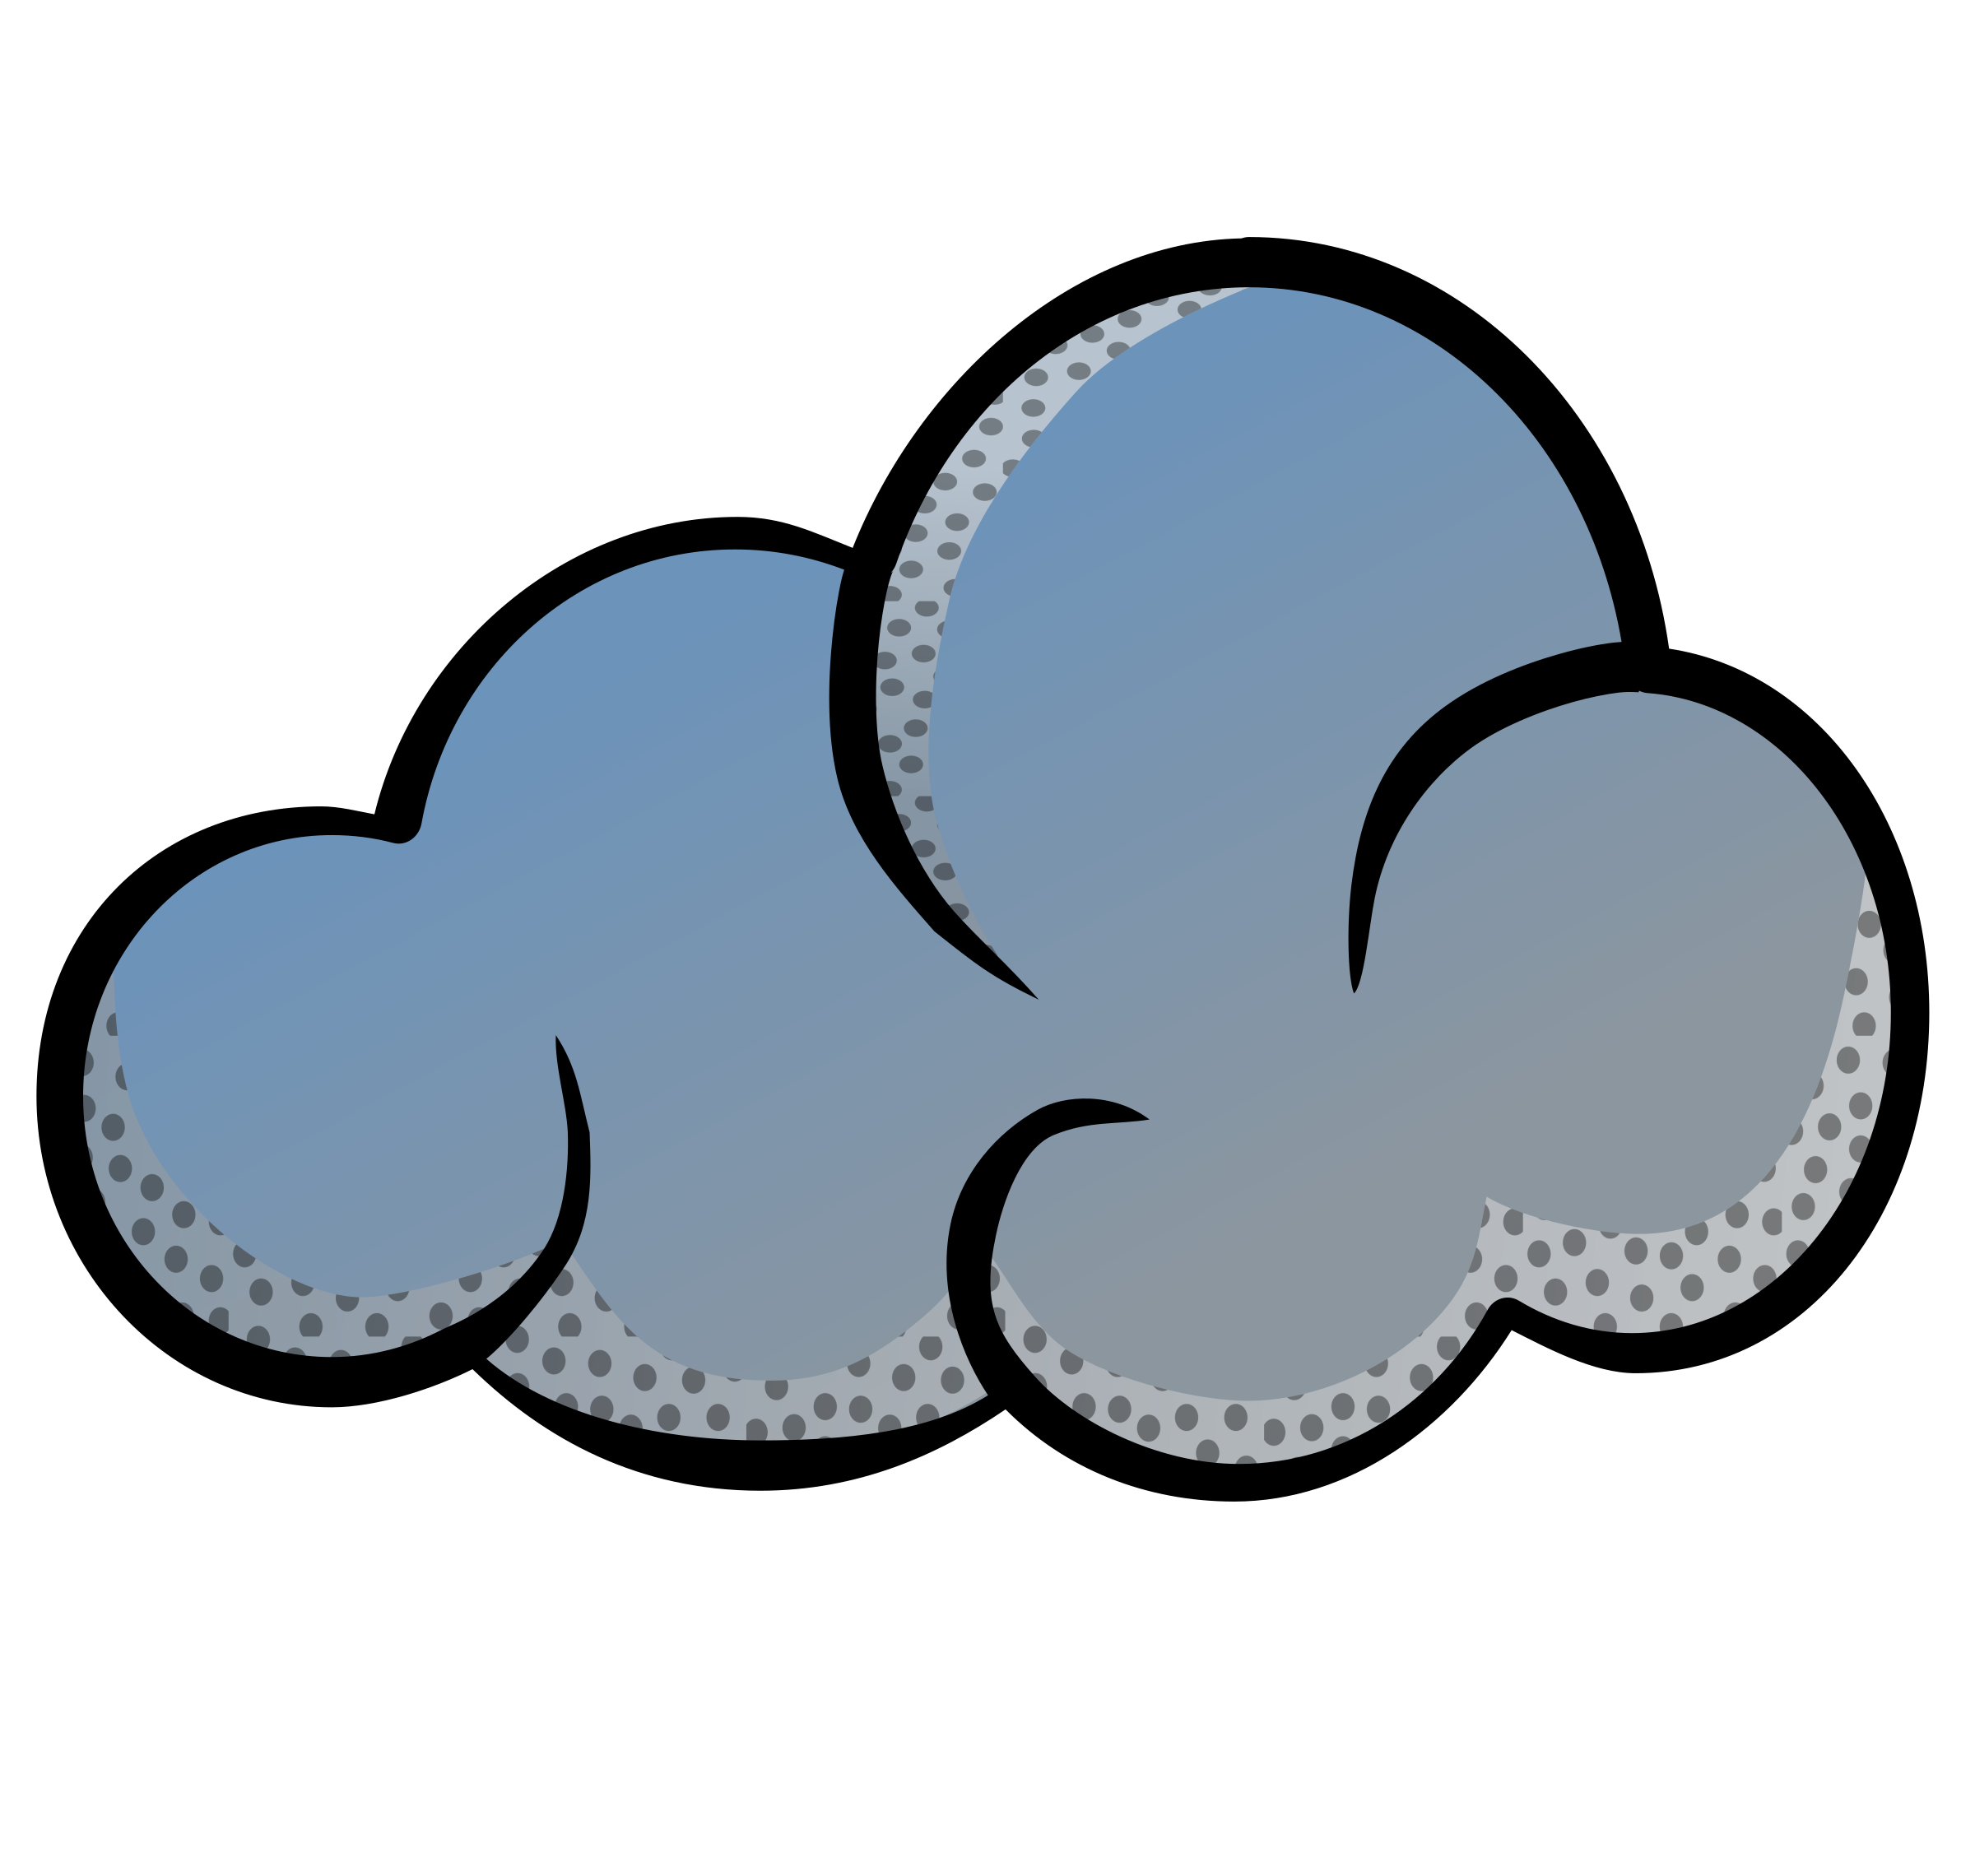 Cloud clipart bmp, Cloud bmp Transparent FREE for download.